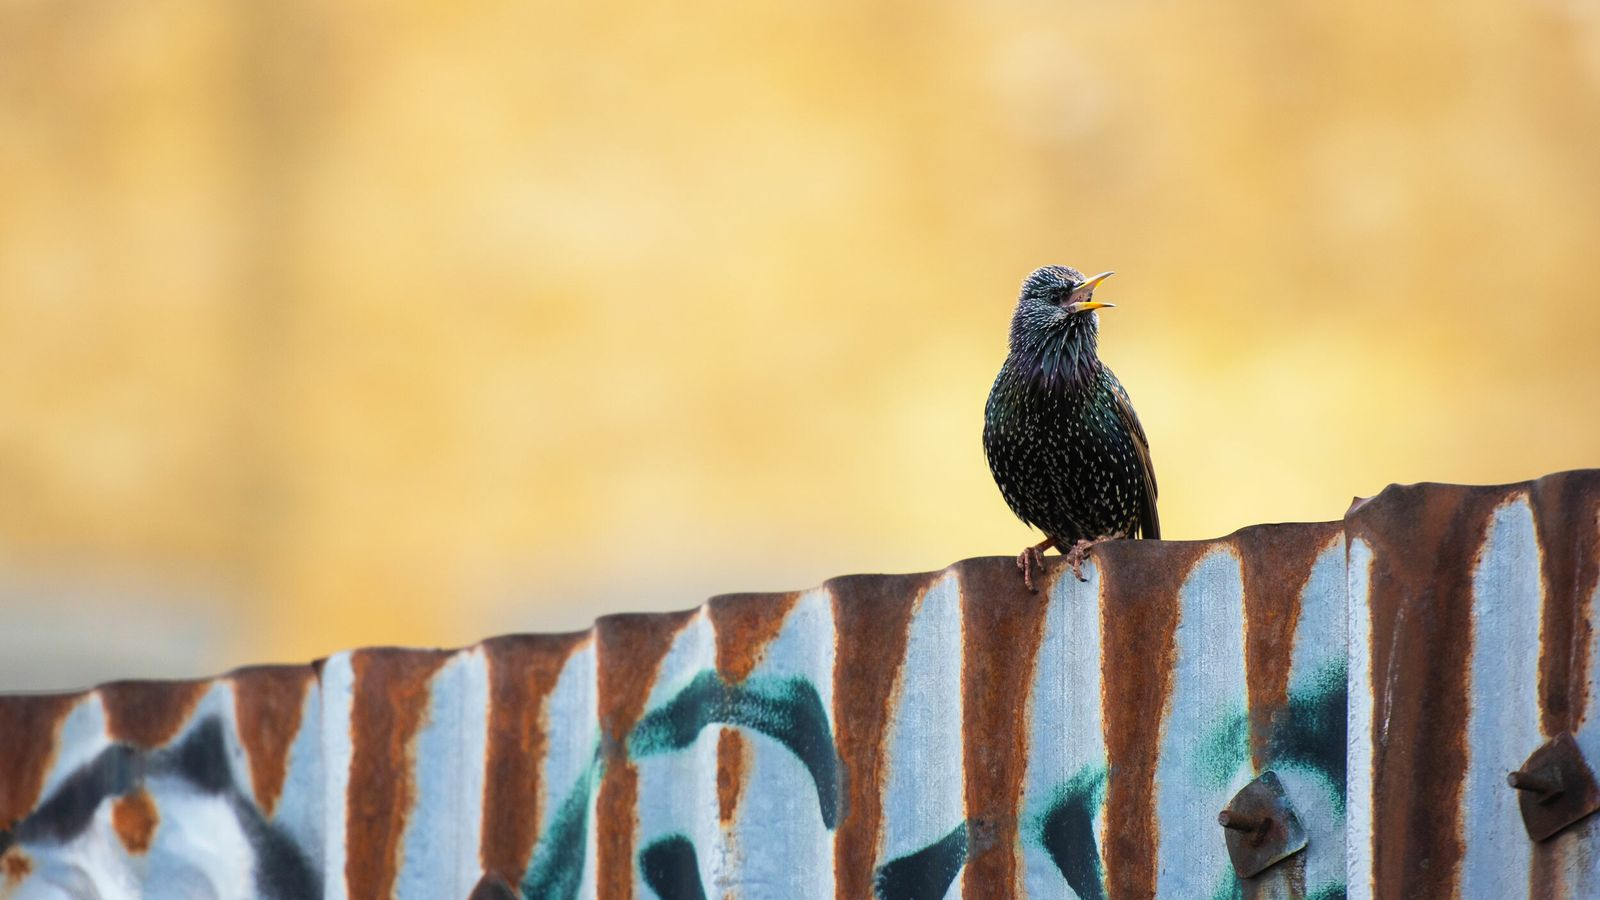 Starlings are usually found in groups: during autumn and winter, they can be seen in enormous ...